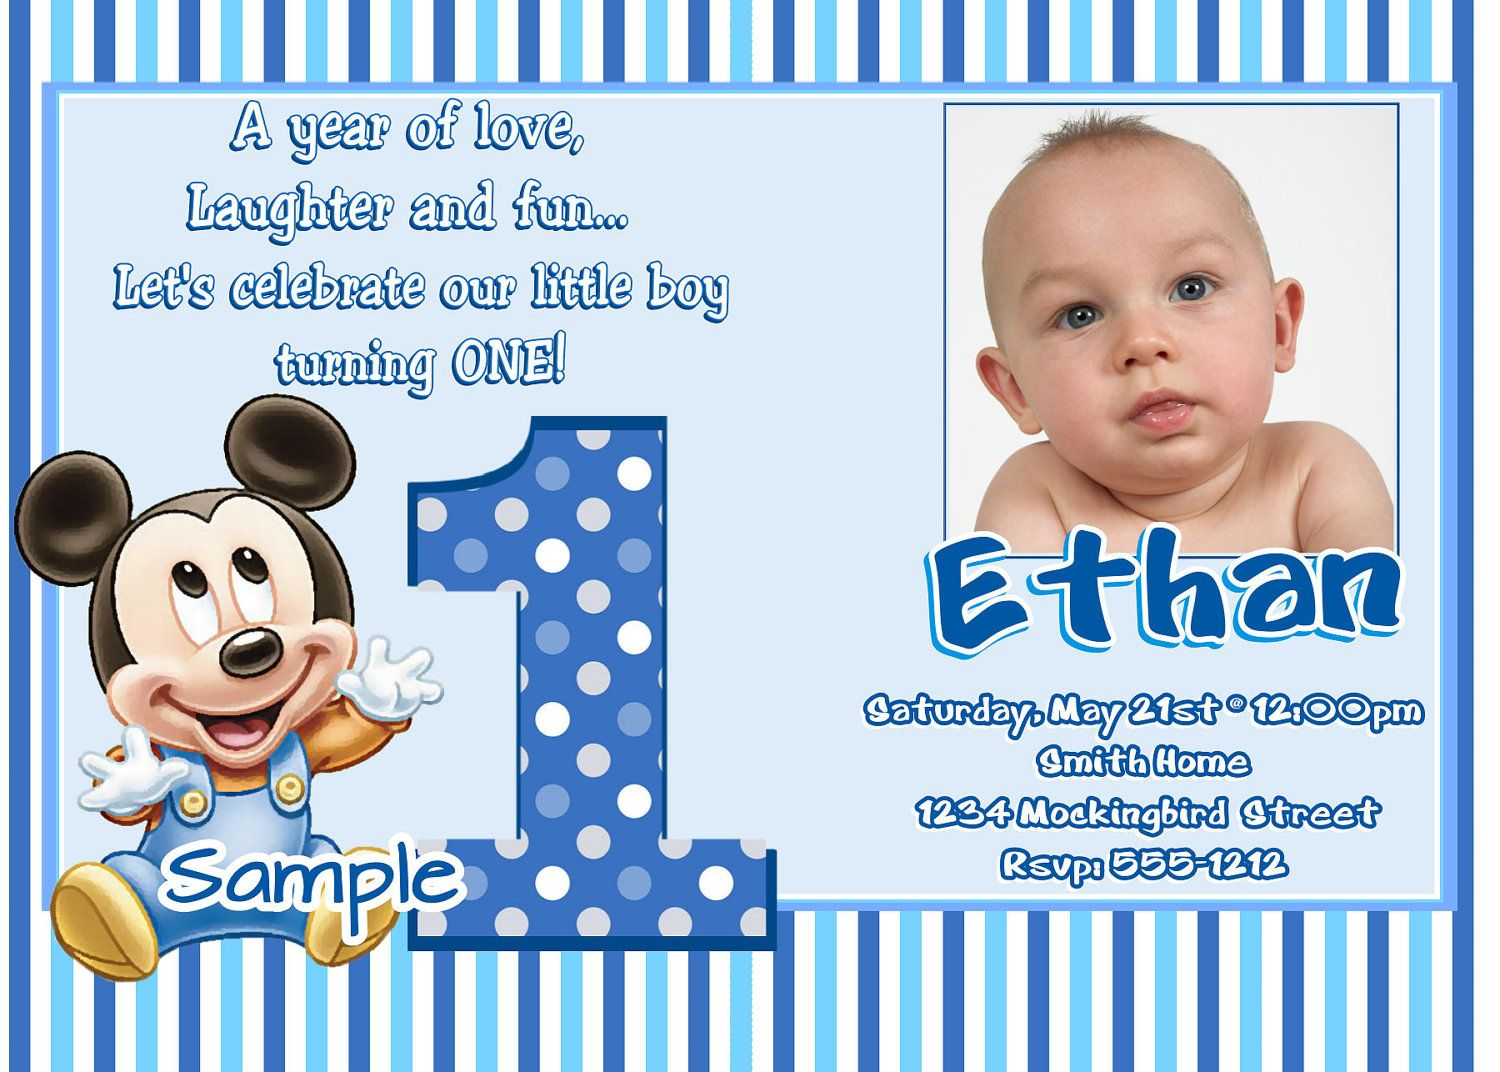 Free 1st birthday invitation maker invitation sample pinterest birthday invitation templates stopboris Image collections